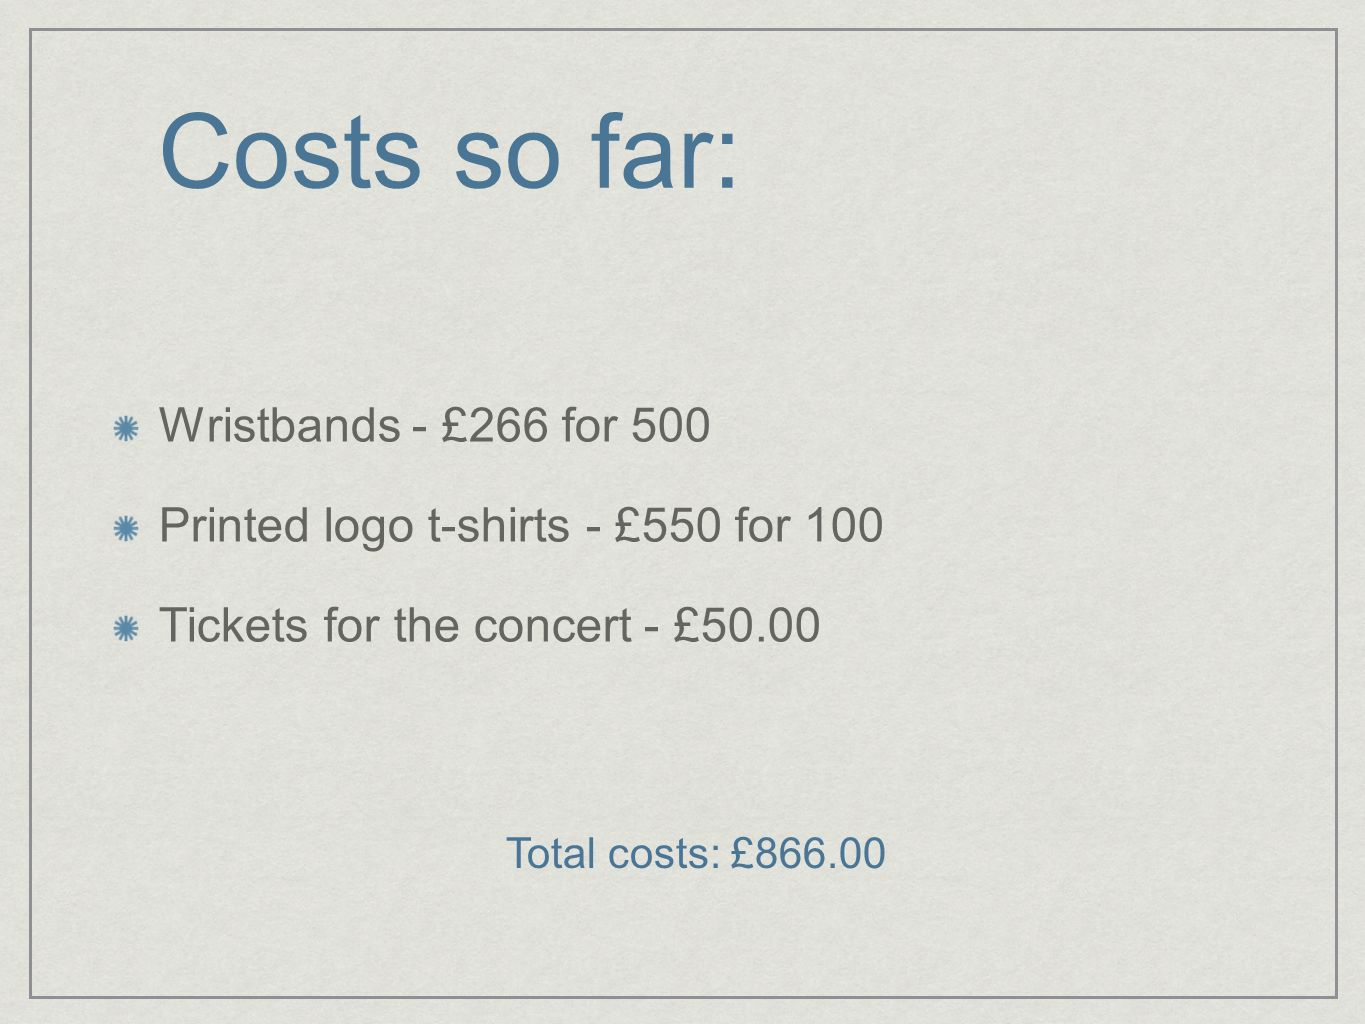 Costs so far: Wristbands - £266 for 500 Printed logo t-shirts - £550 for 100 Tickets for the concert - £50.00 Total costs: £866.00